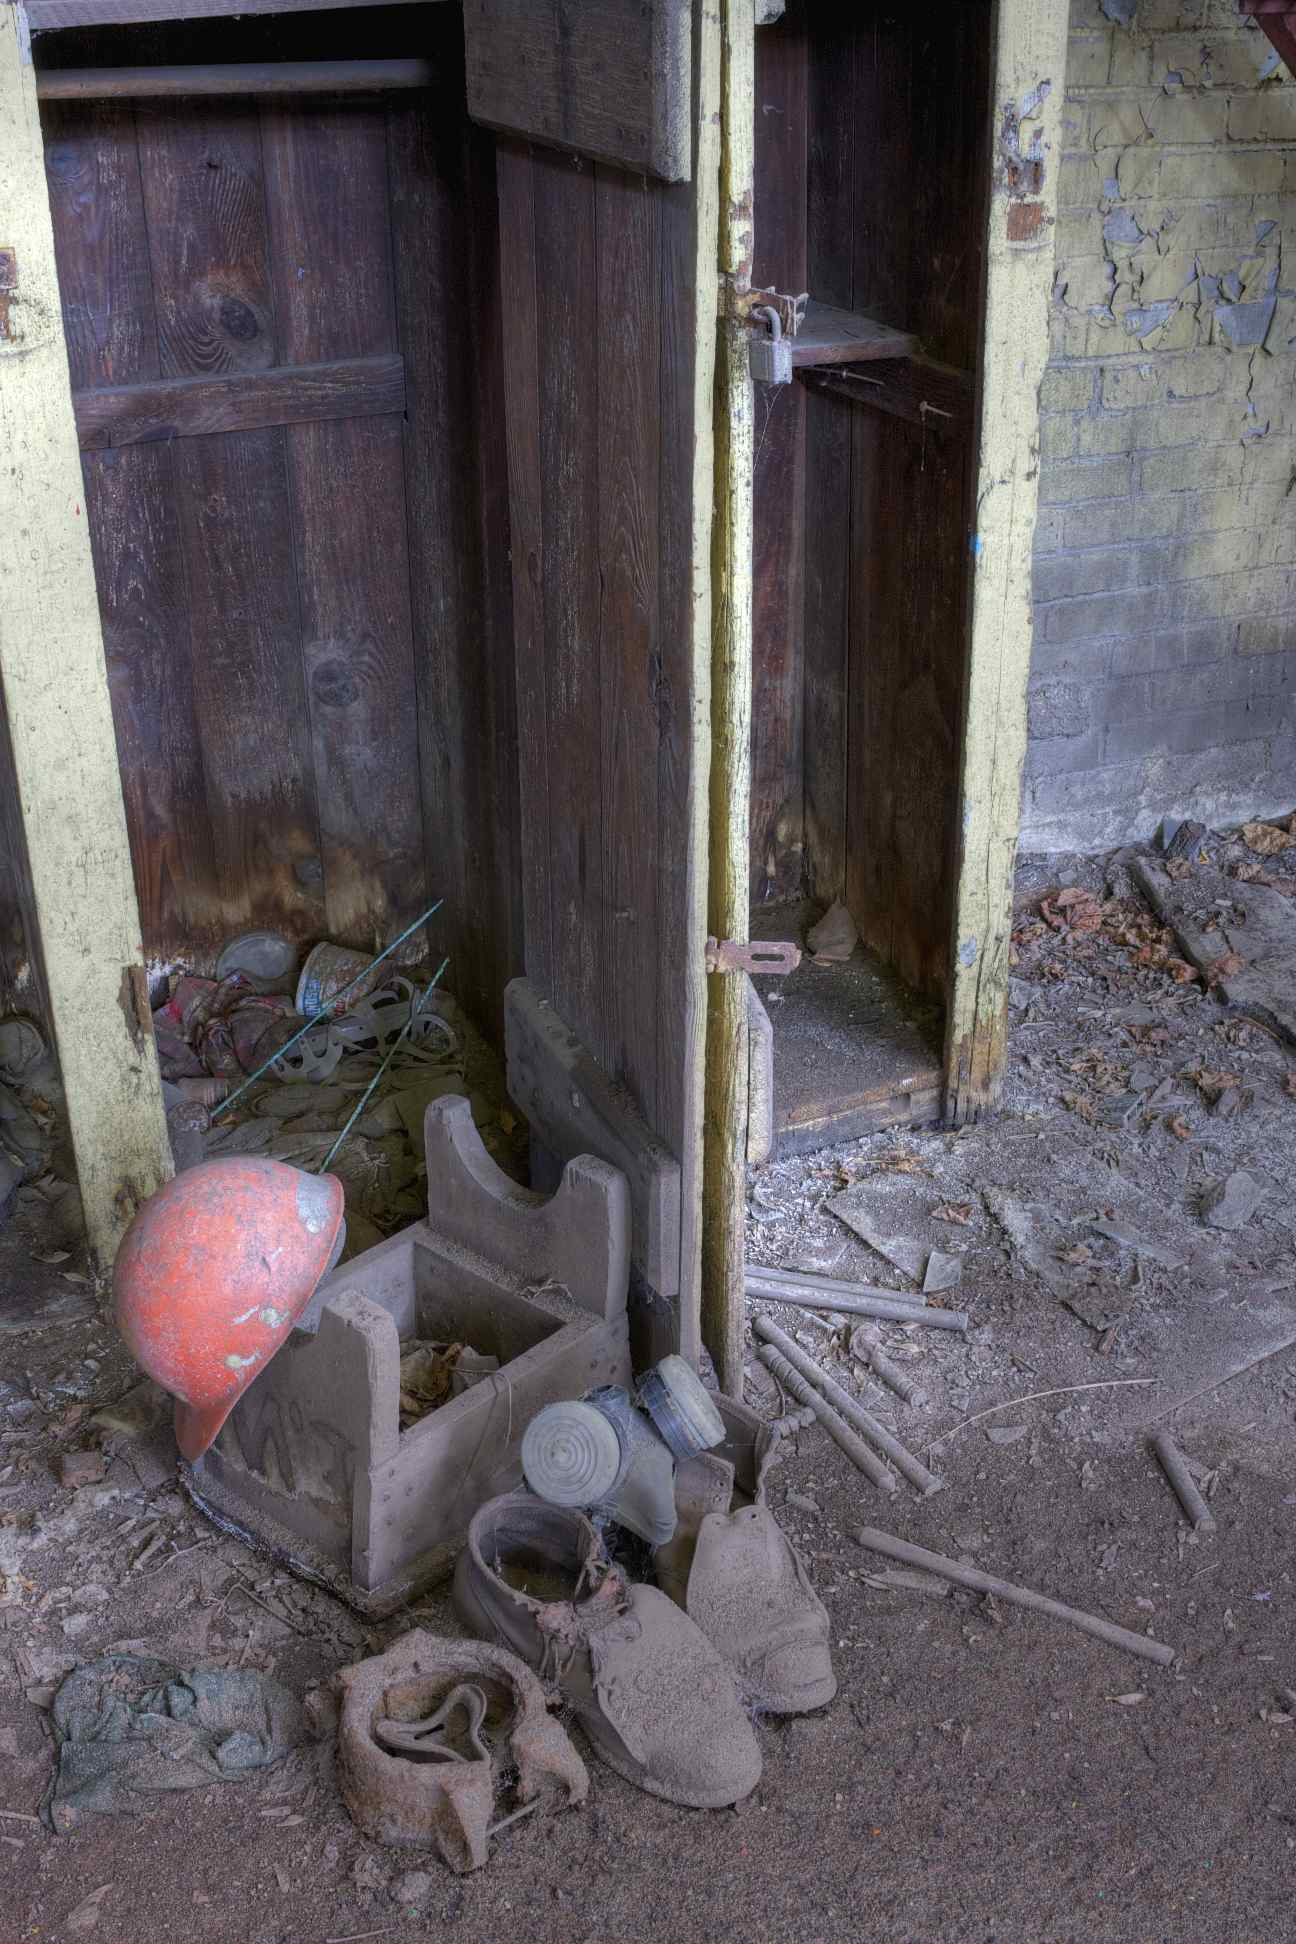 Fort Pitt Foundry: Boots and Helmet